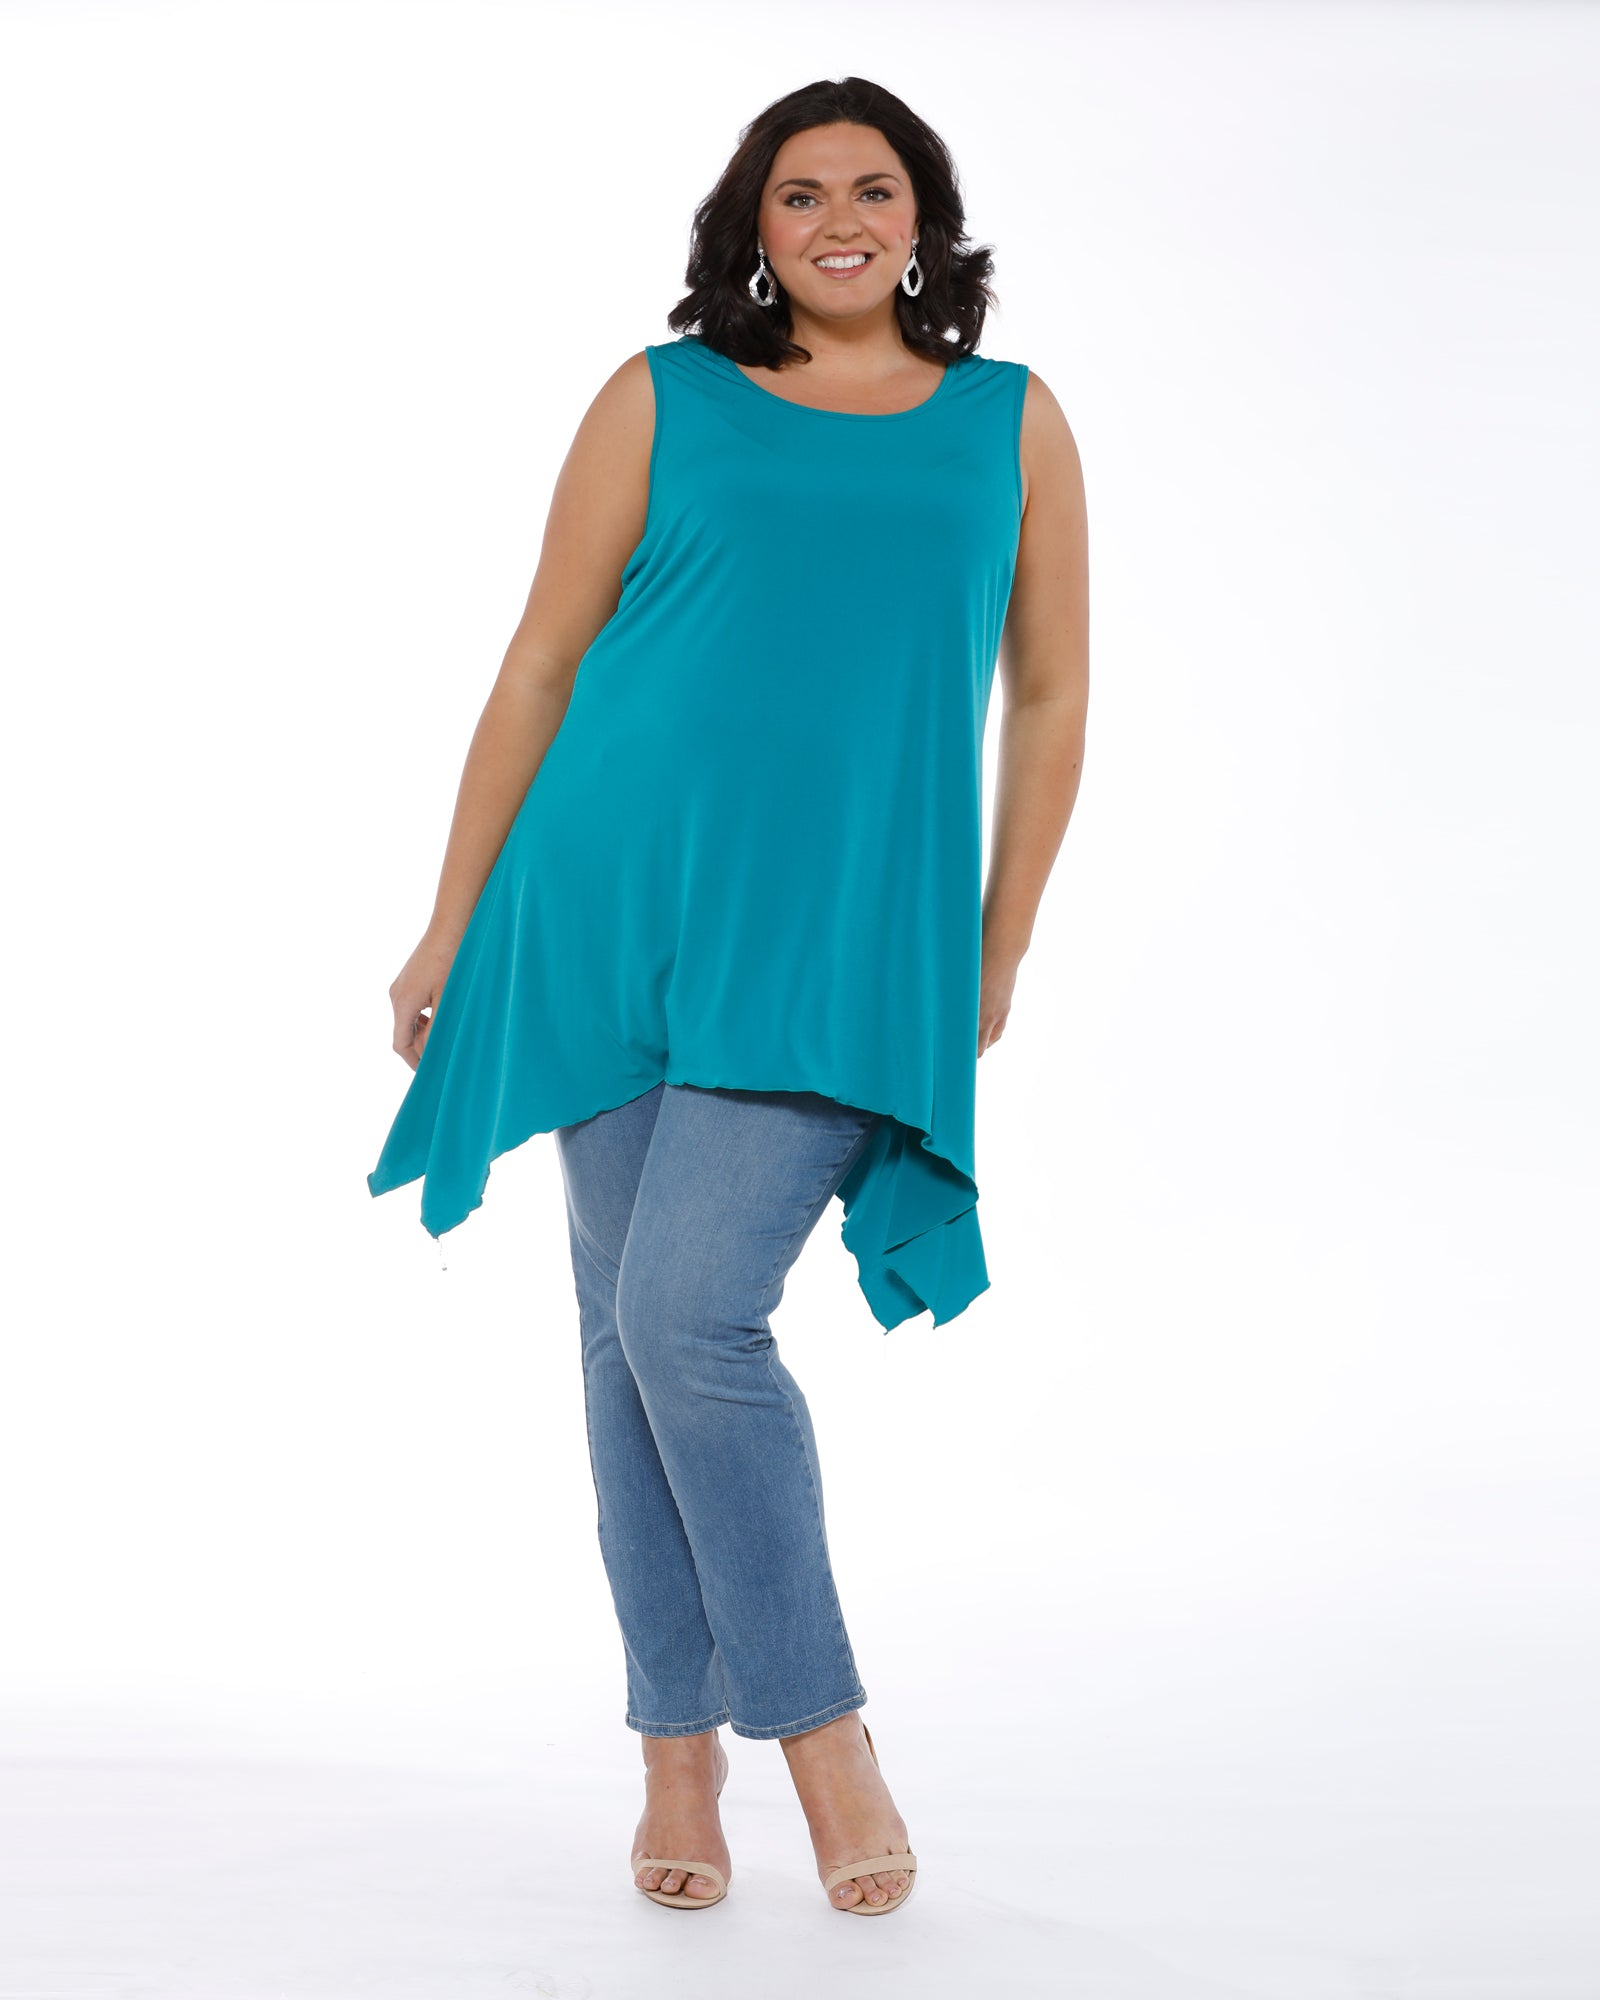 Soft Knit Tunic - Teal Size 14 only